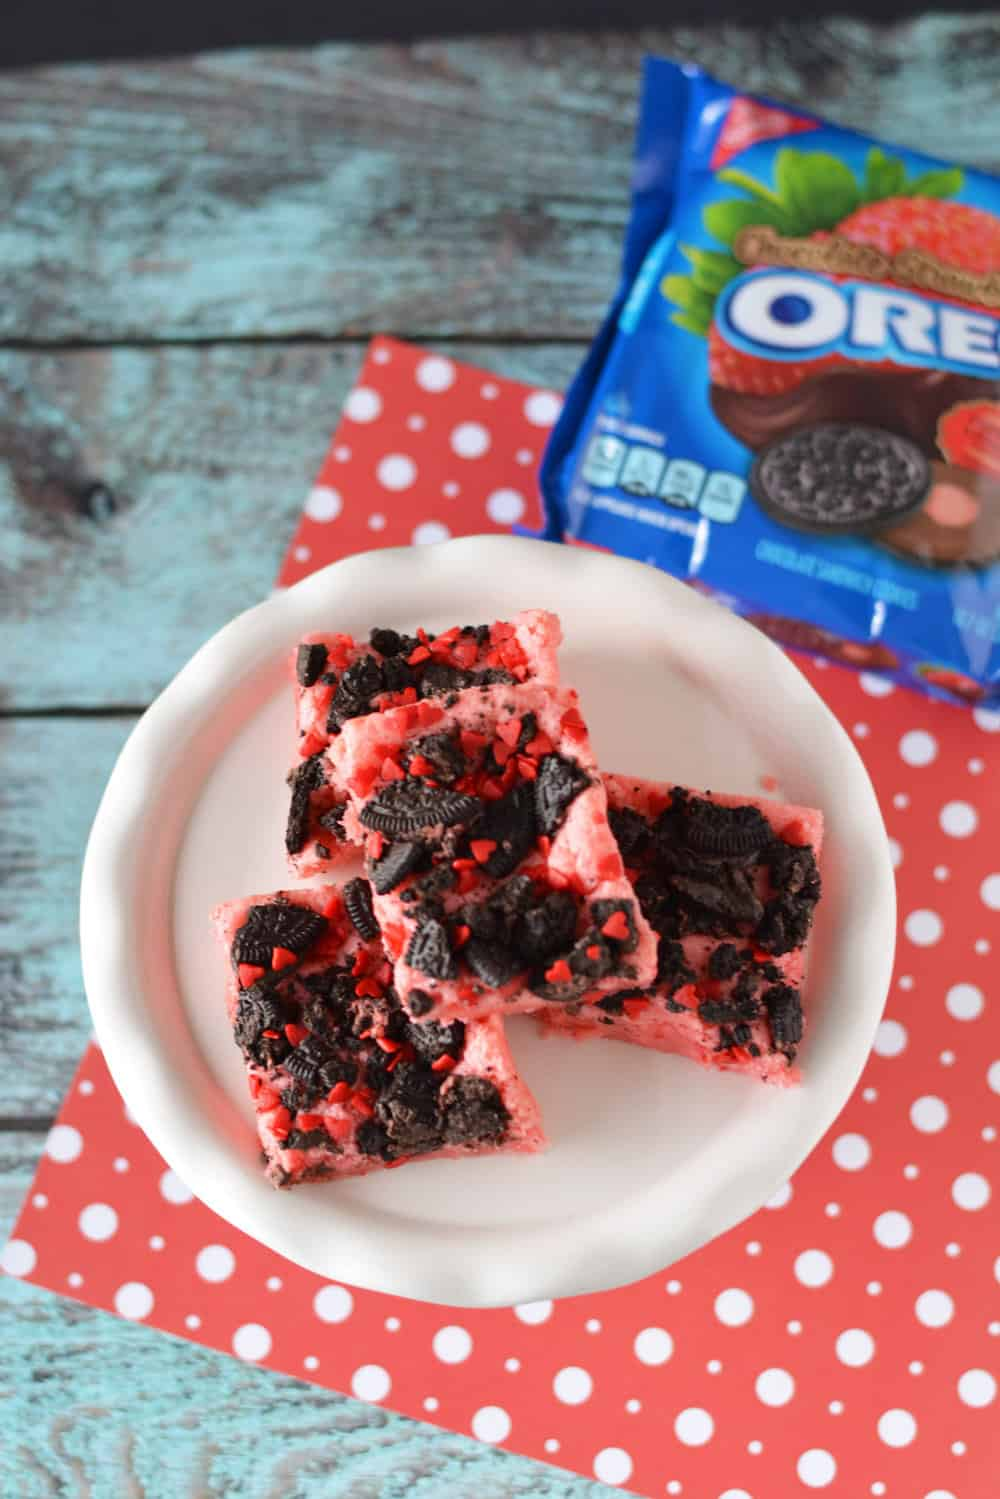 These delicious chocolate strawberry Oreo brownies are so easy to make! Moist with a crunchy topping and sprinkles - perfect for Valentine's Day!